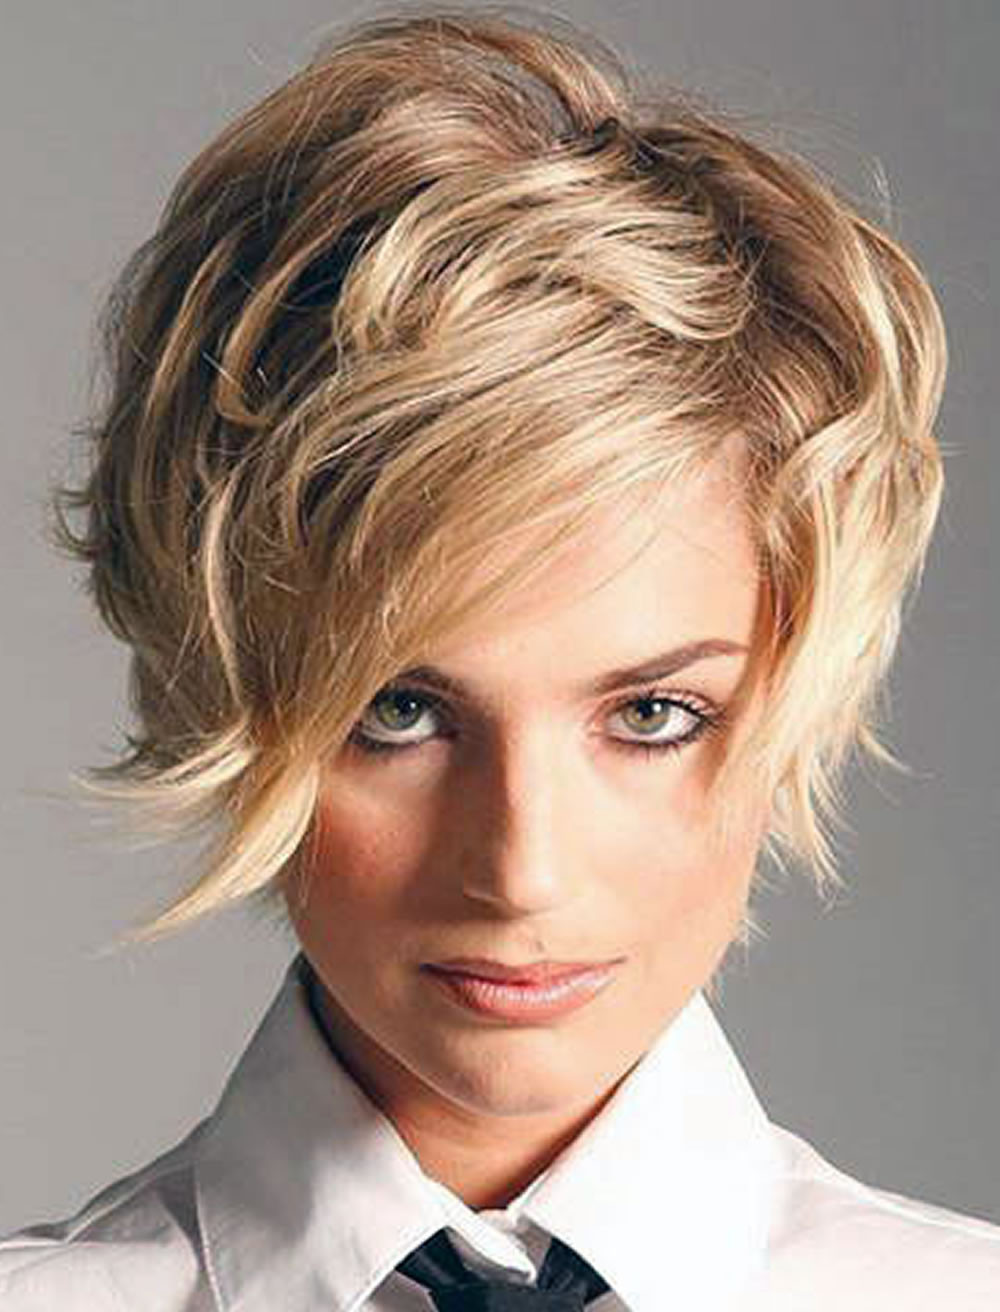 Short Hairstyles For Thick Hair 2019  30 Amazing Short Hair Haircuts for Girls 2018 2019 – Page